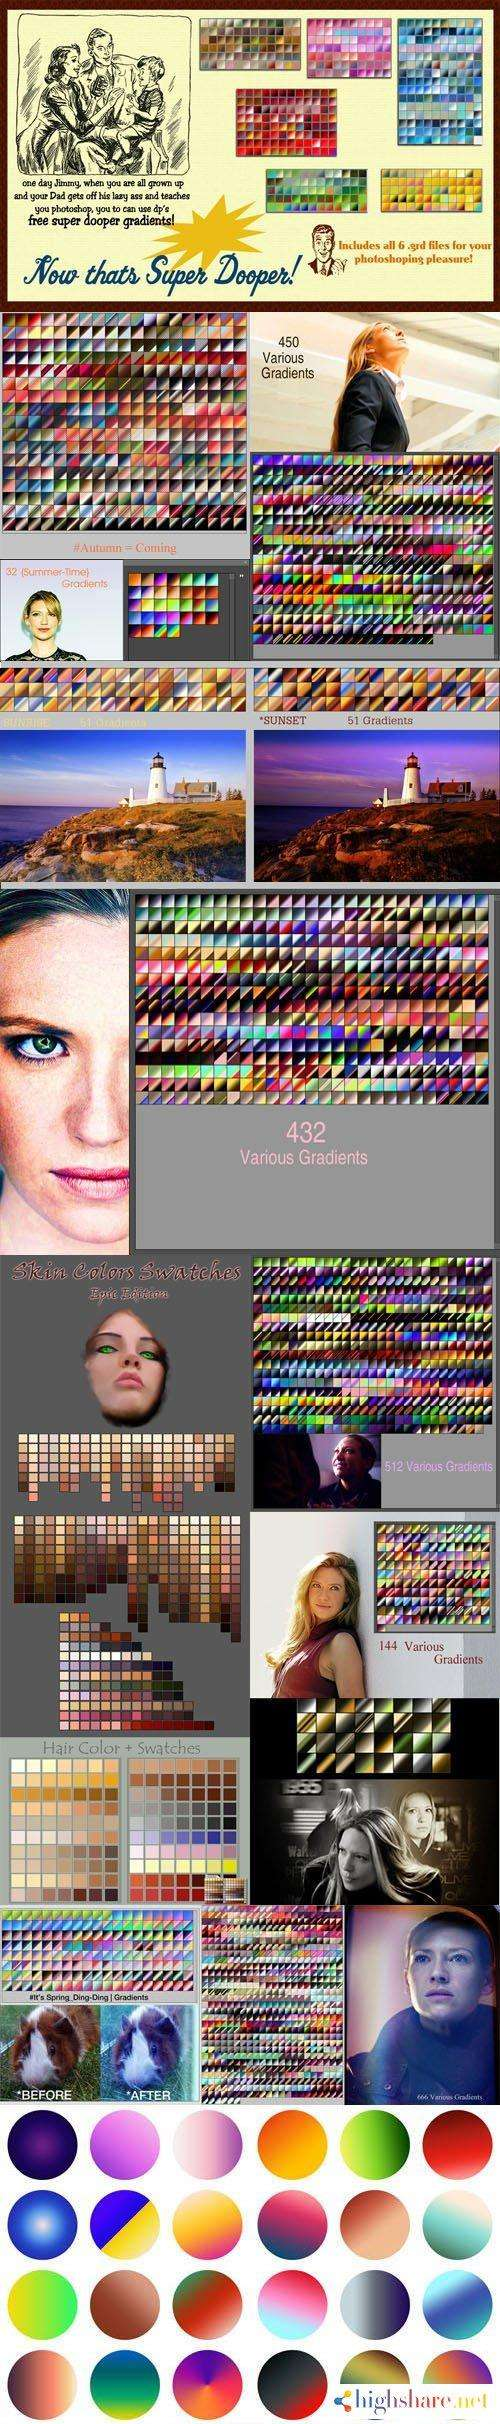 3000 awesome photoshop gradients grd swatches aco collection 5f49f6d44505f - 3000+ Awesome Photoshop Gradients (GRD) & Swatches (ACO) Collection